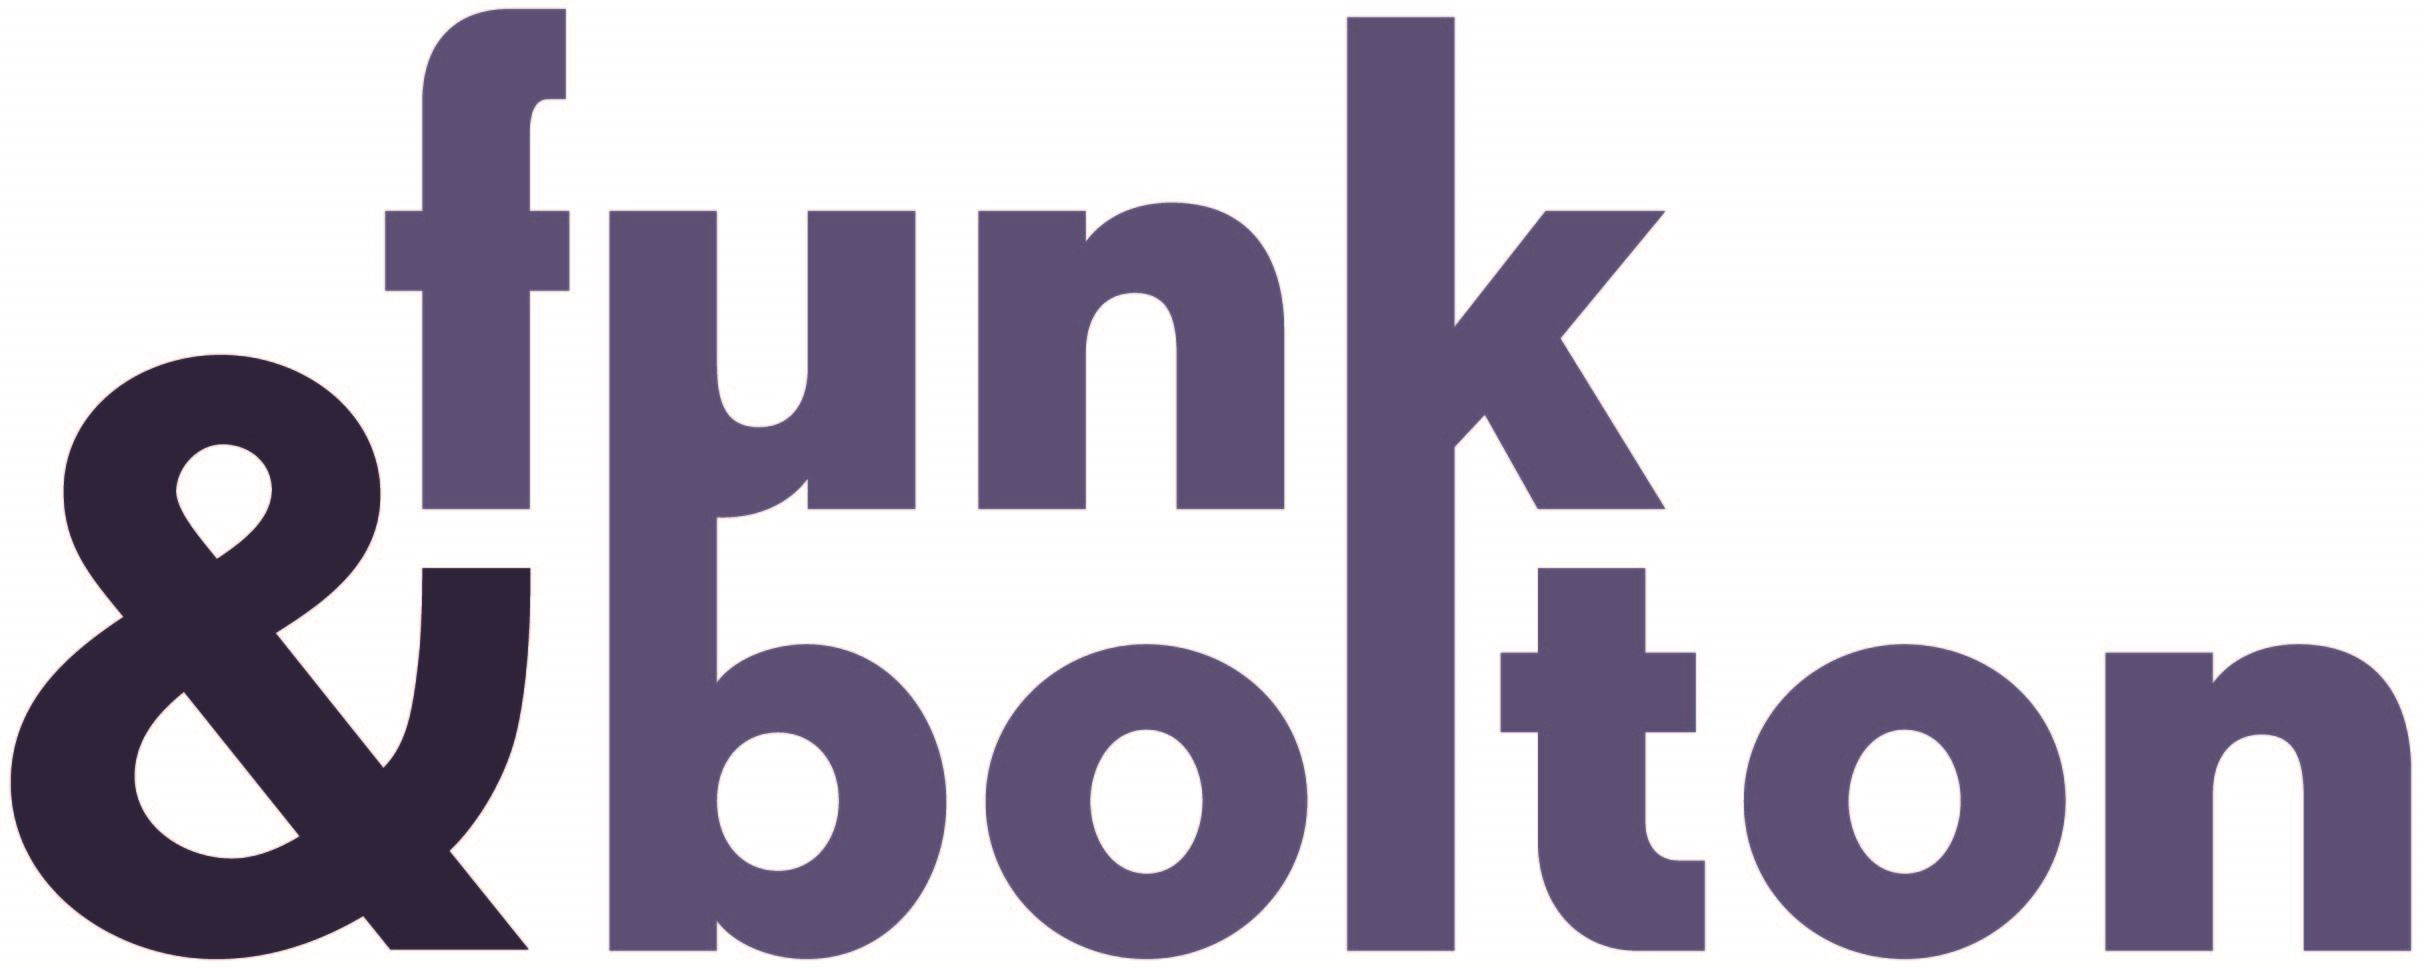 New Funk and Bolton Logo